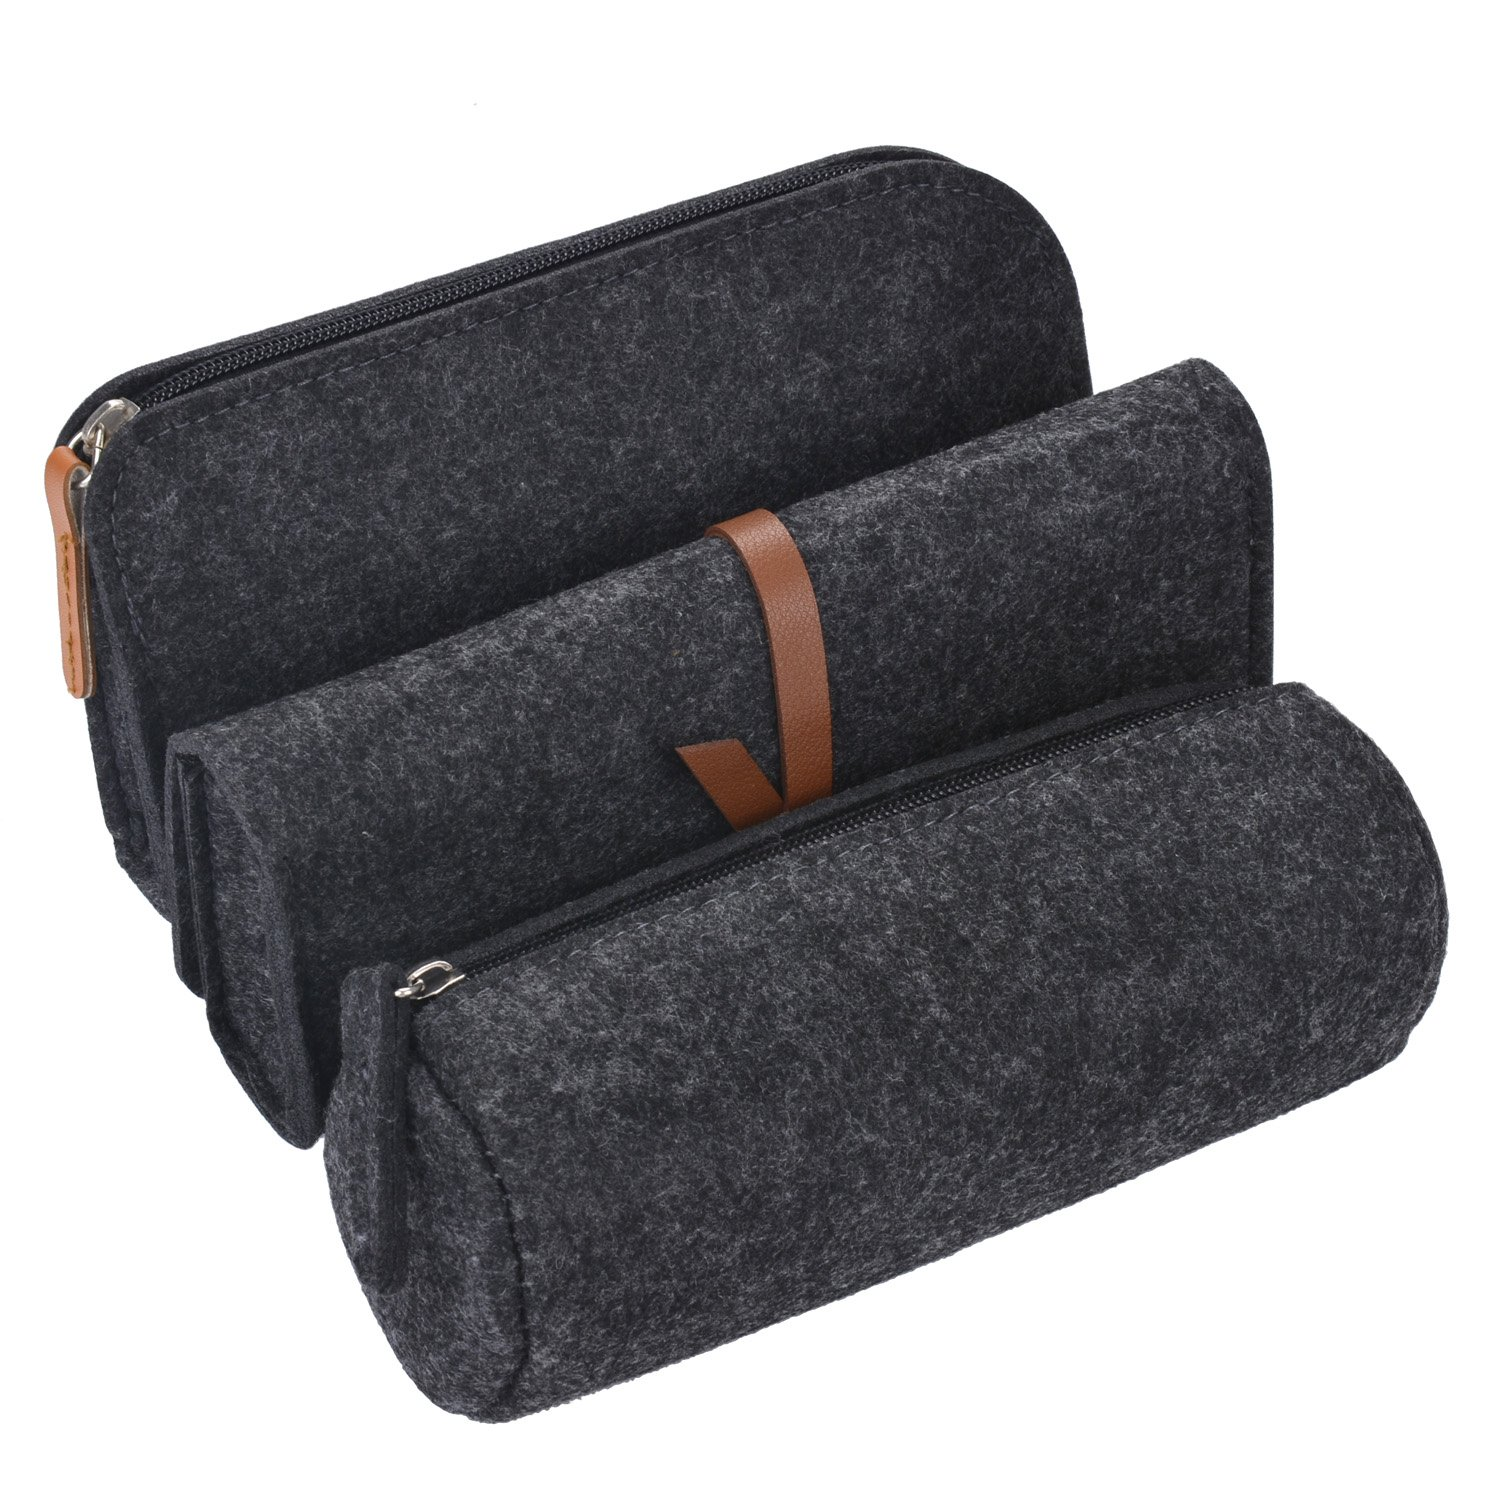 Pencil Case, Coofit 3 Pack Pen Case Pencil Holder Cosmetic Pouch Bag Dark Grey